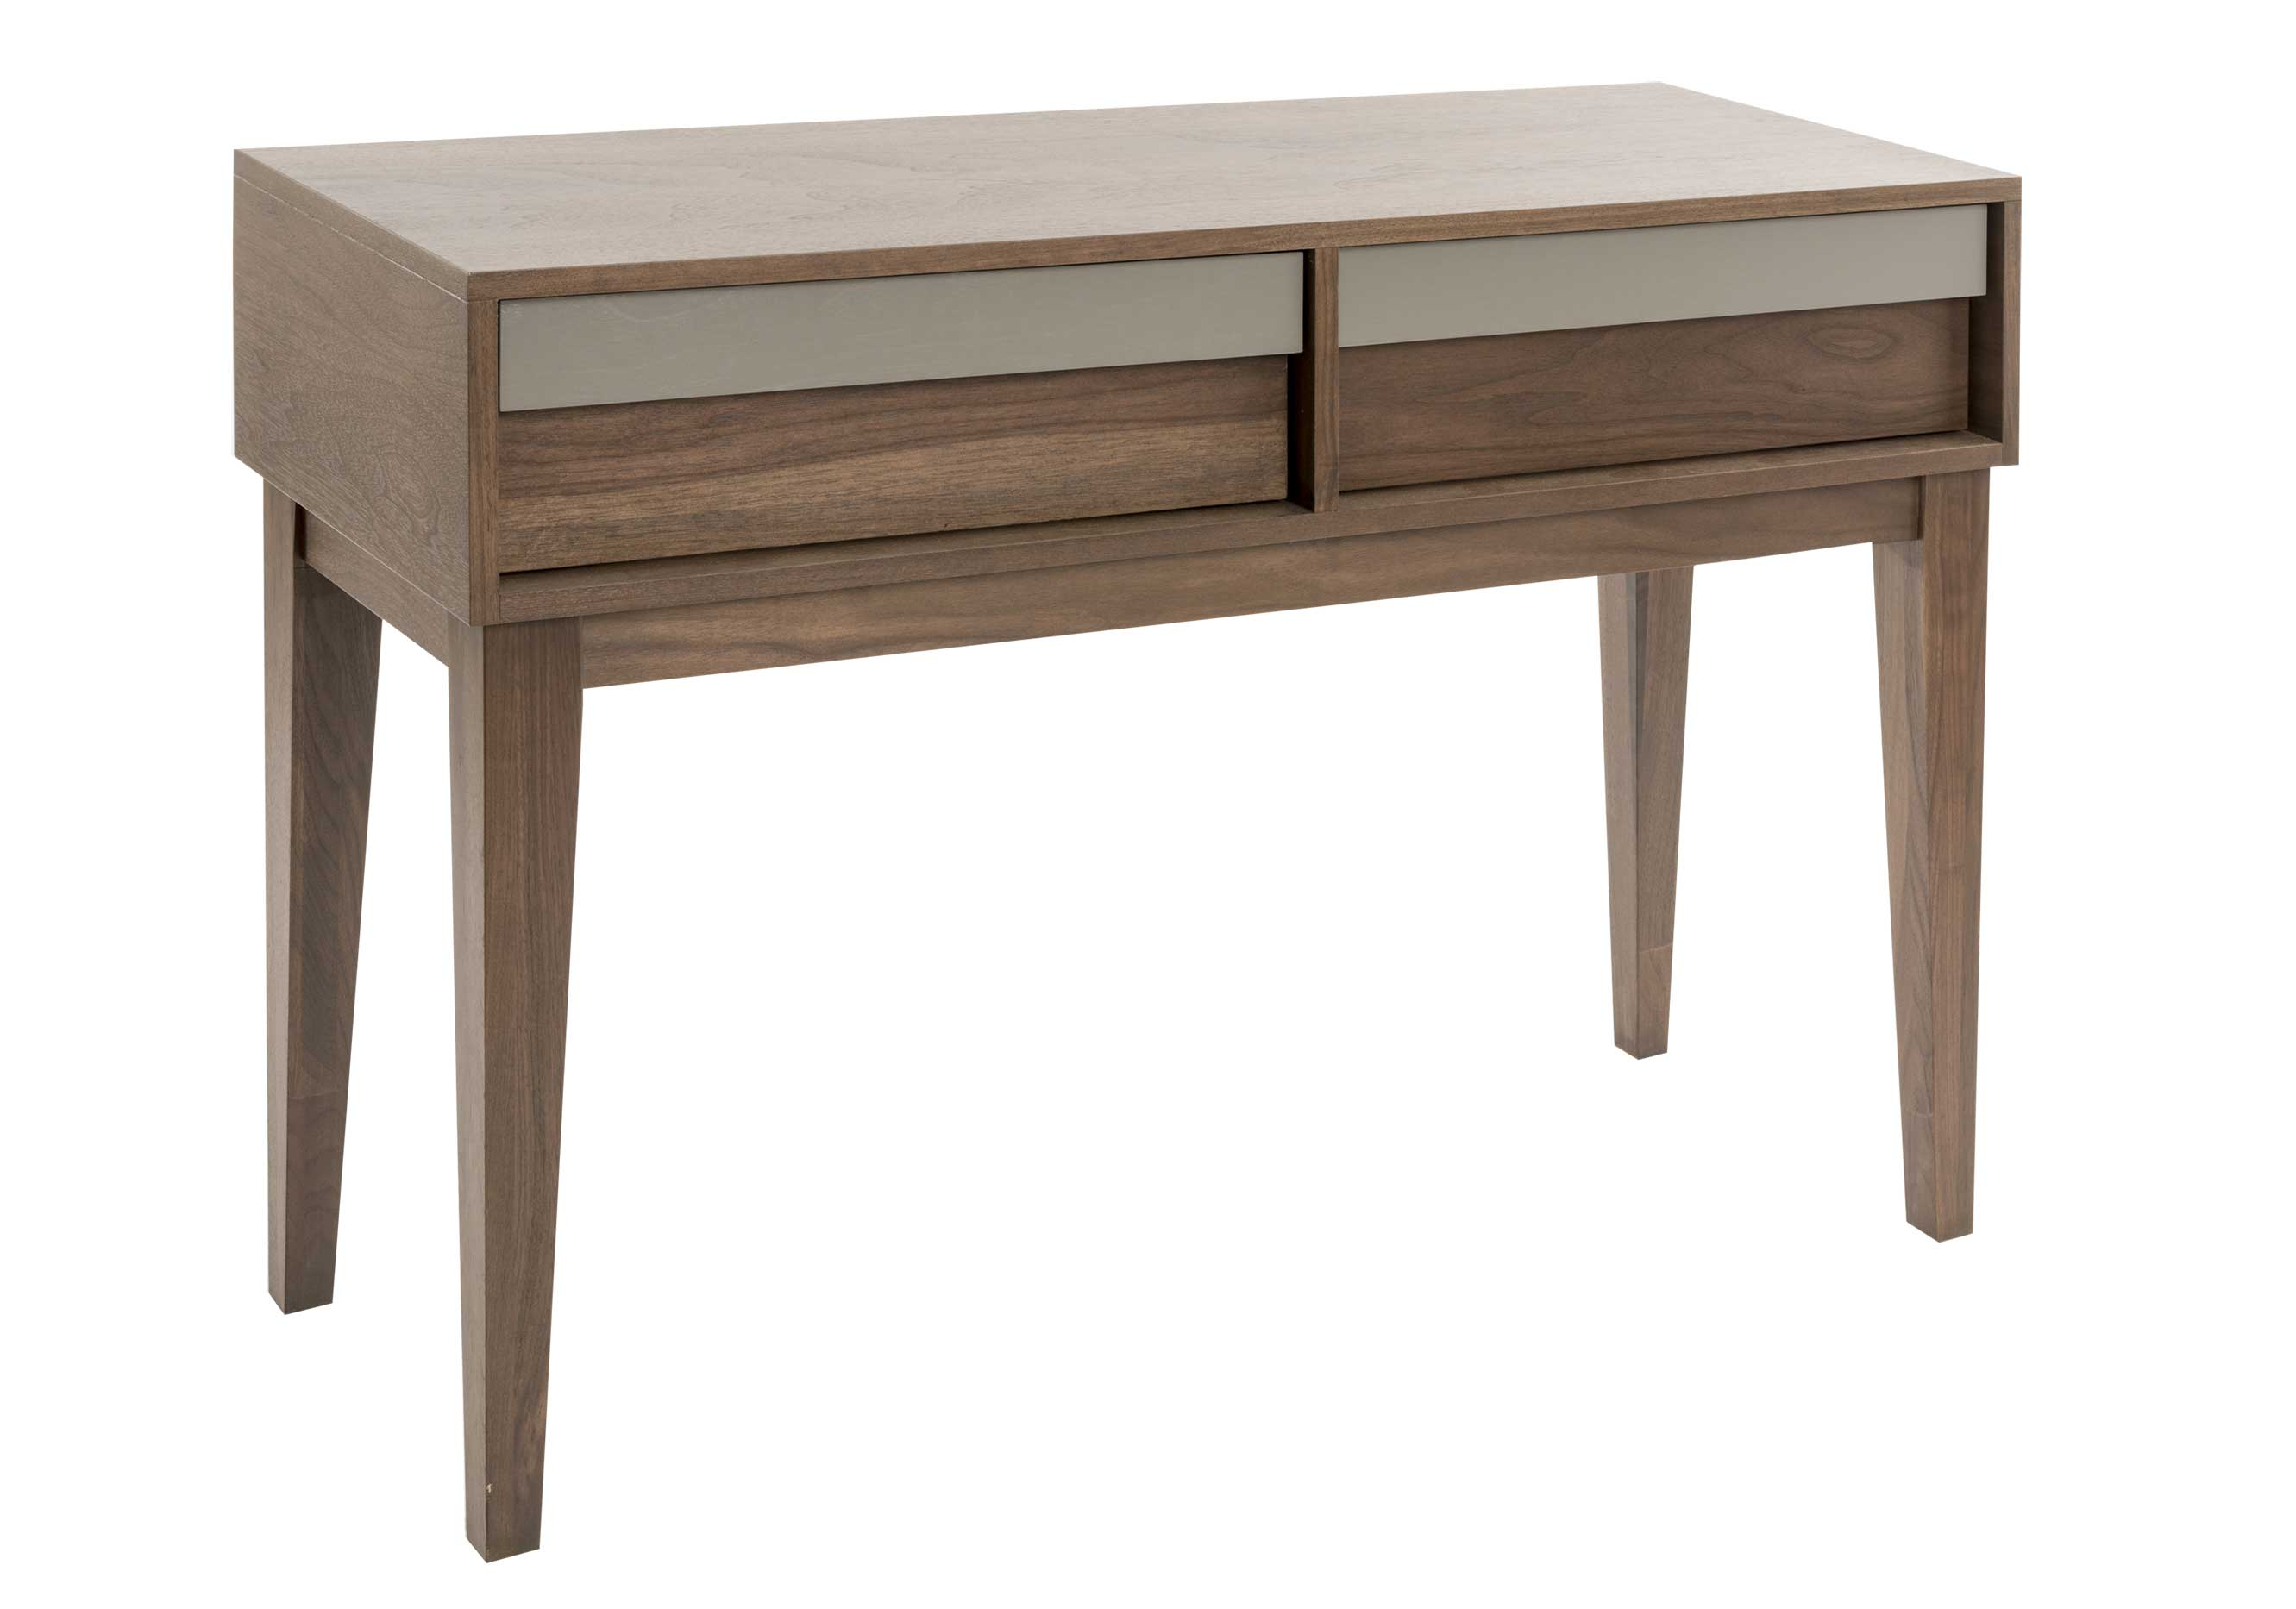 Living room tables 150TCON